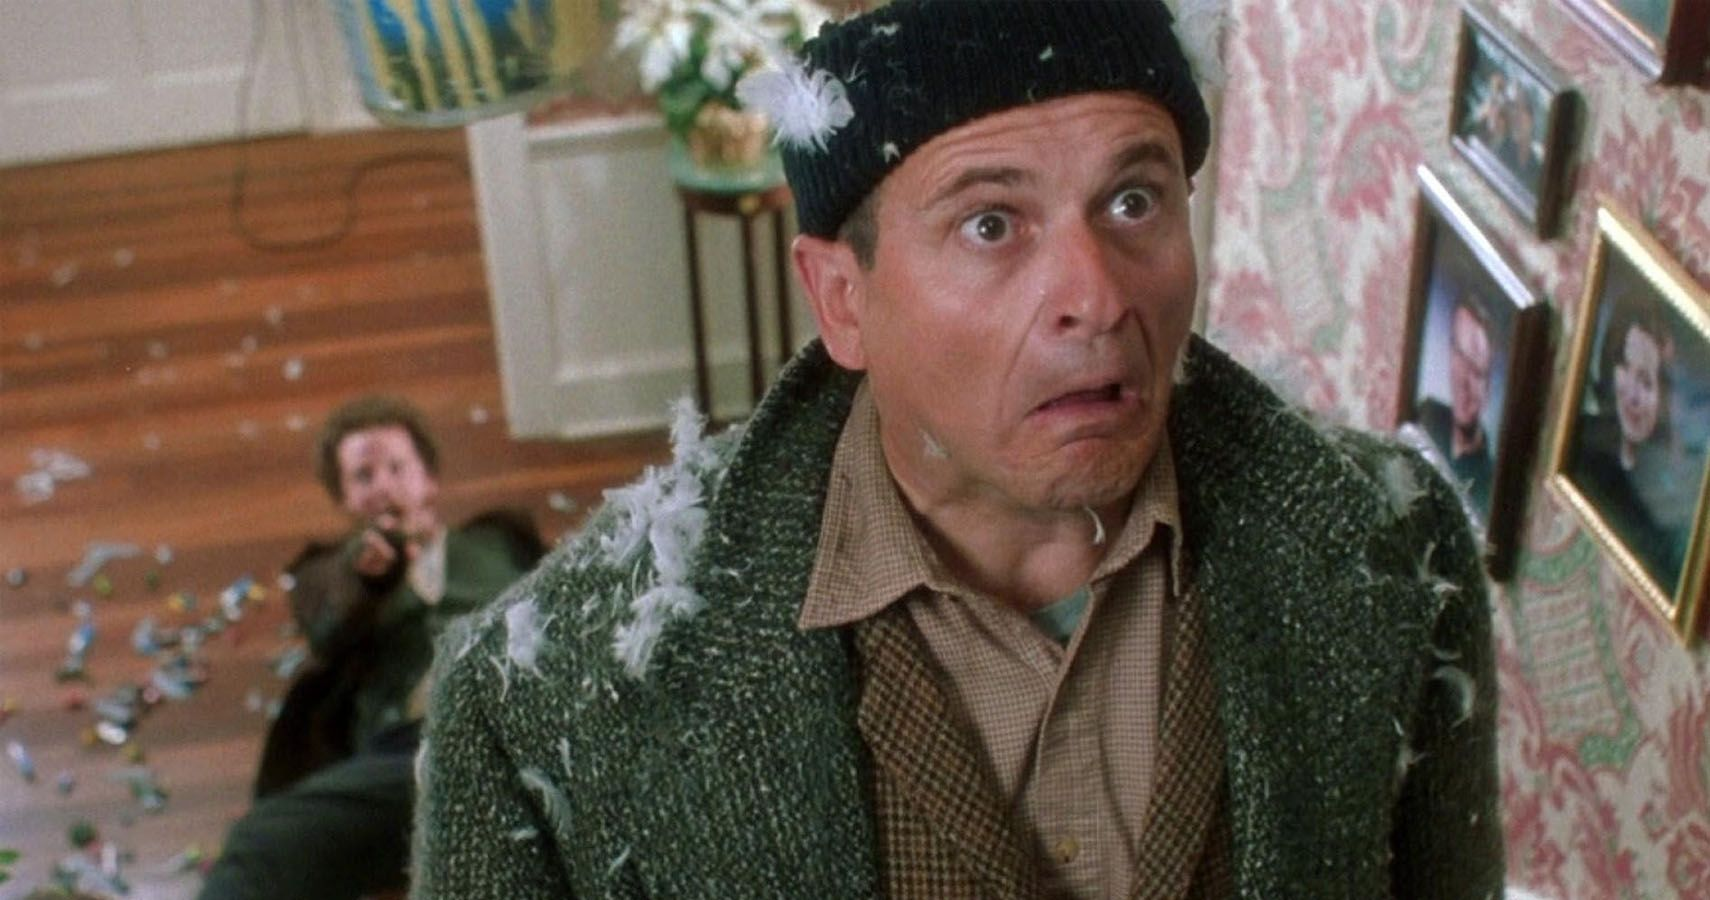 Home Alone: 5 Reasons It's The Best Christmas Movie (& 5 Reasons It's Not)